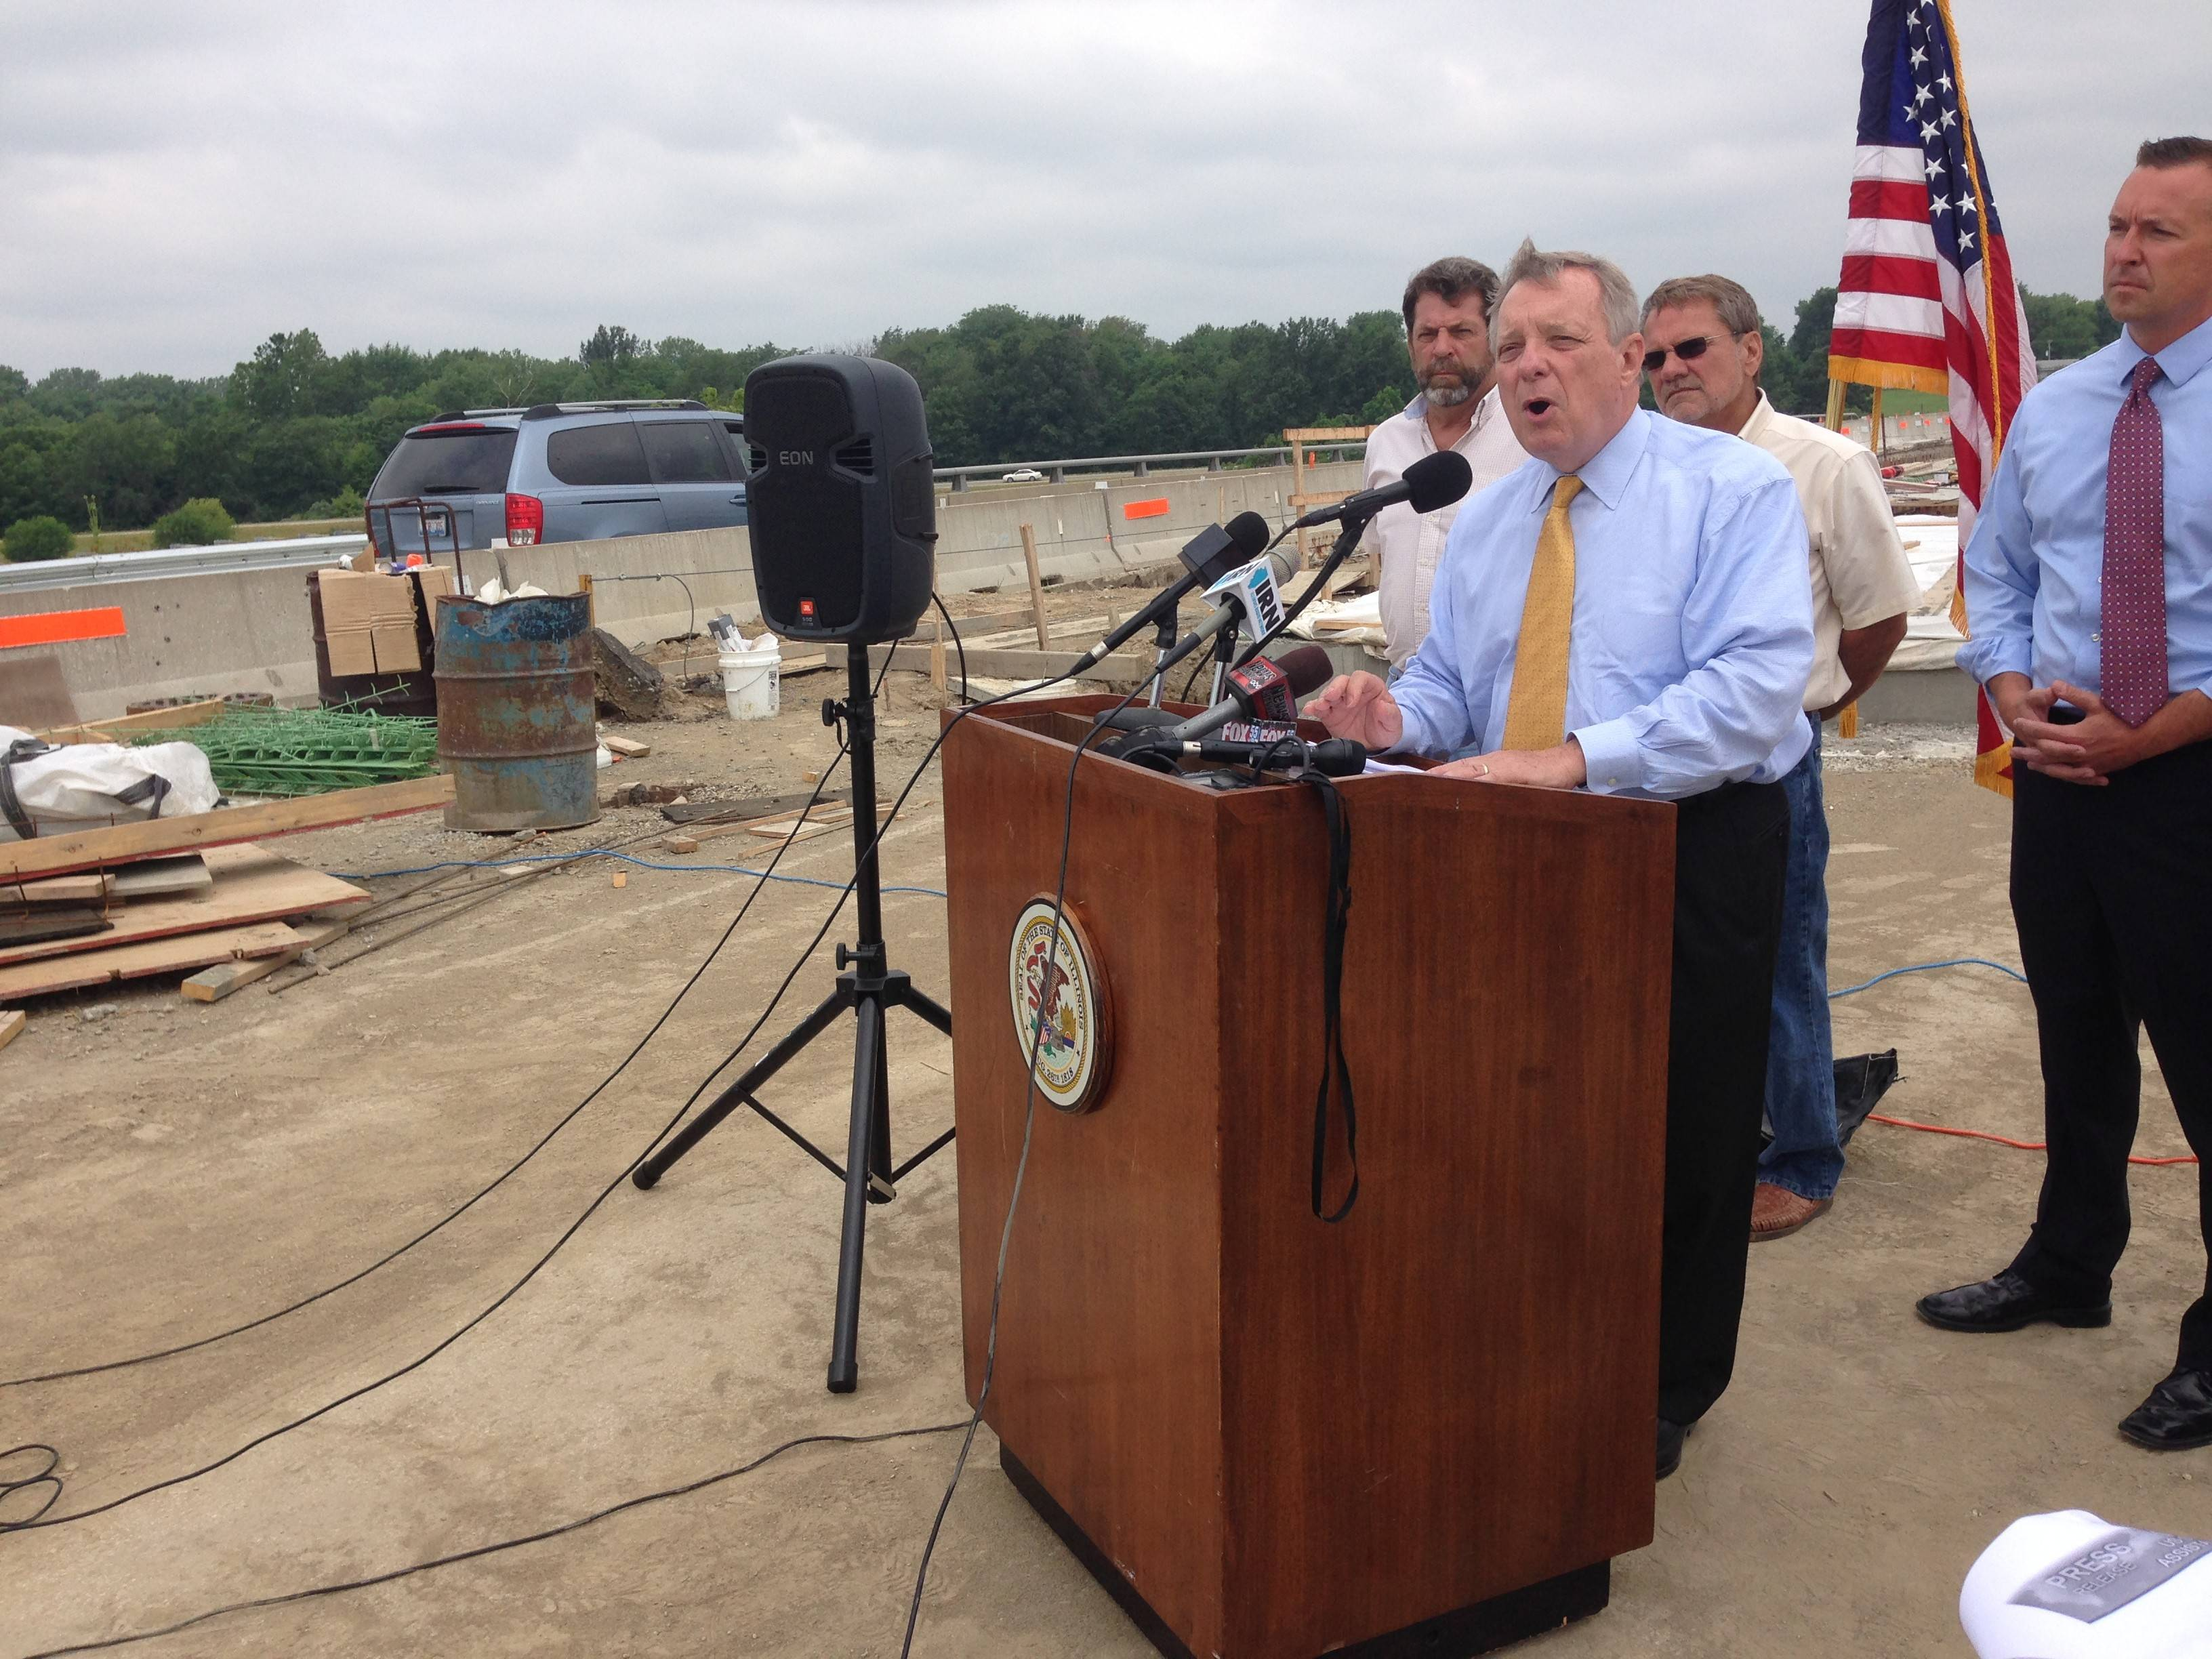 U.S. Sen. Dick Durbin said a pot of money the federal government uses to pay for road construction could go dry soon.